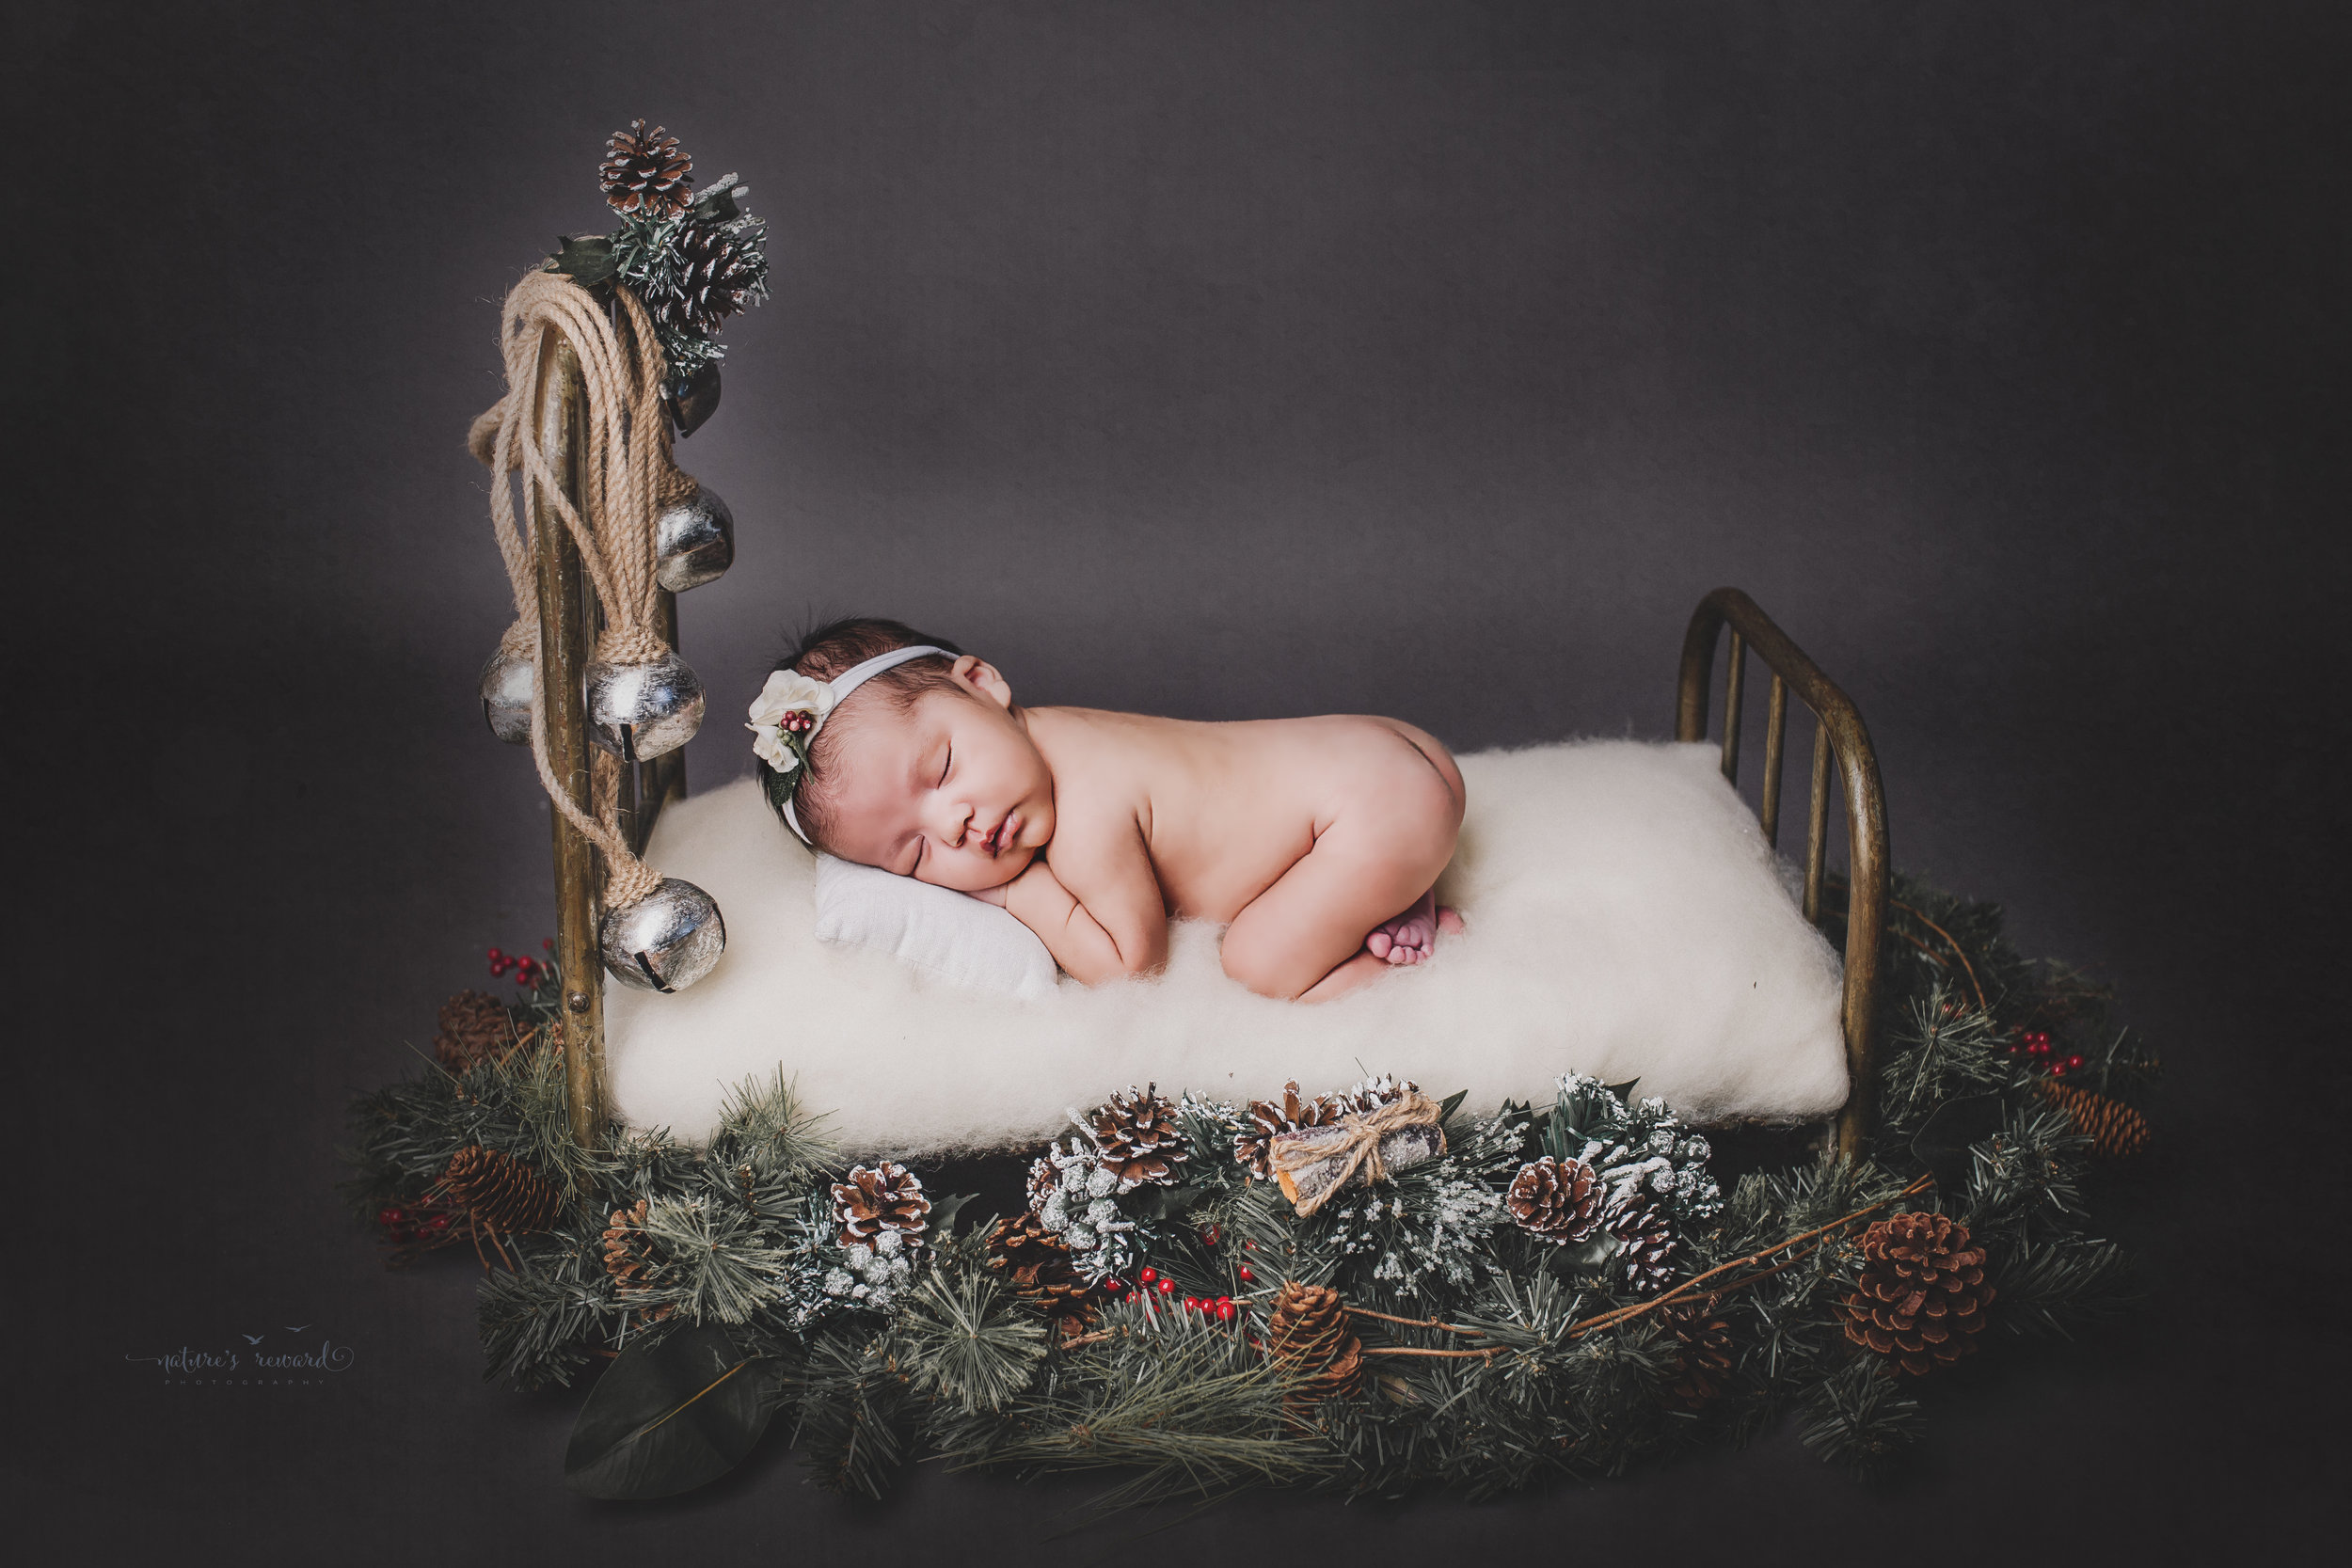 A newborn Christmas portrait of this sweet newborn baby girl on a baby baby surrounded by pine and silver bells- a portrait by Nature's Reward Photography